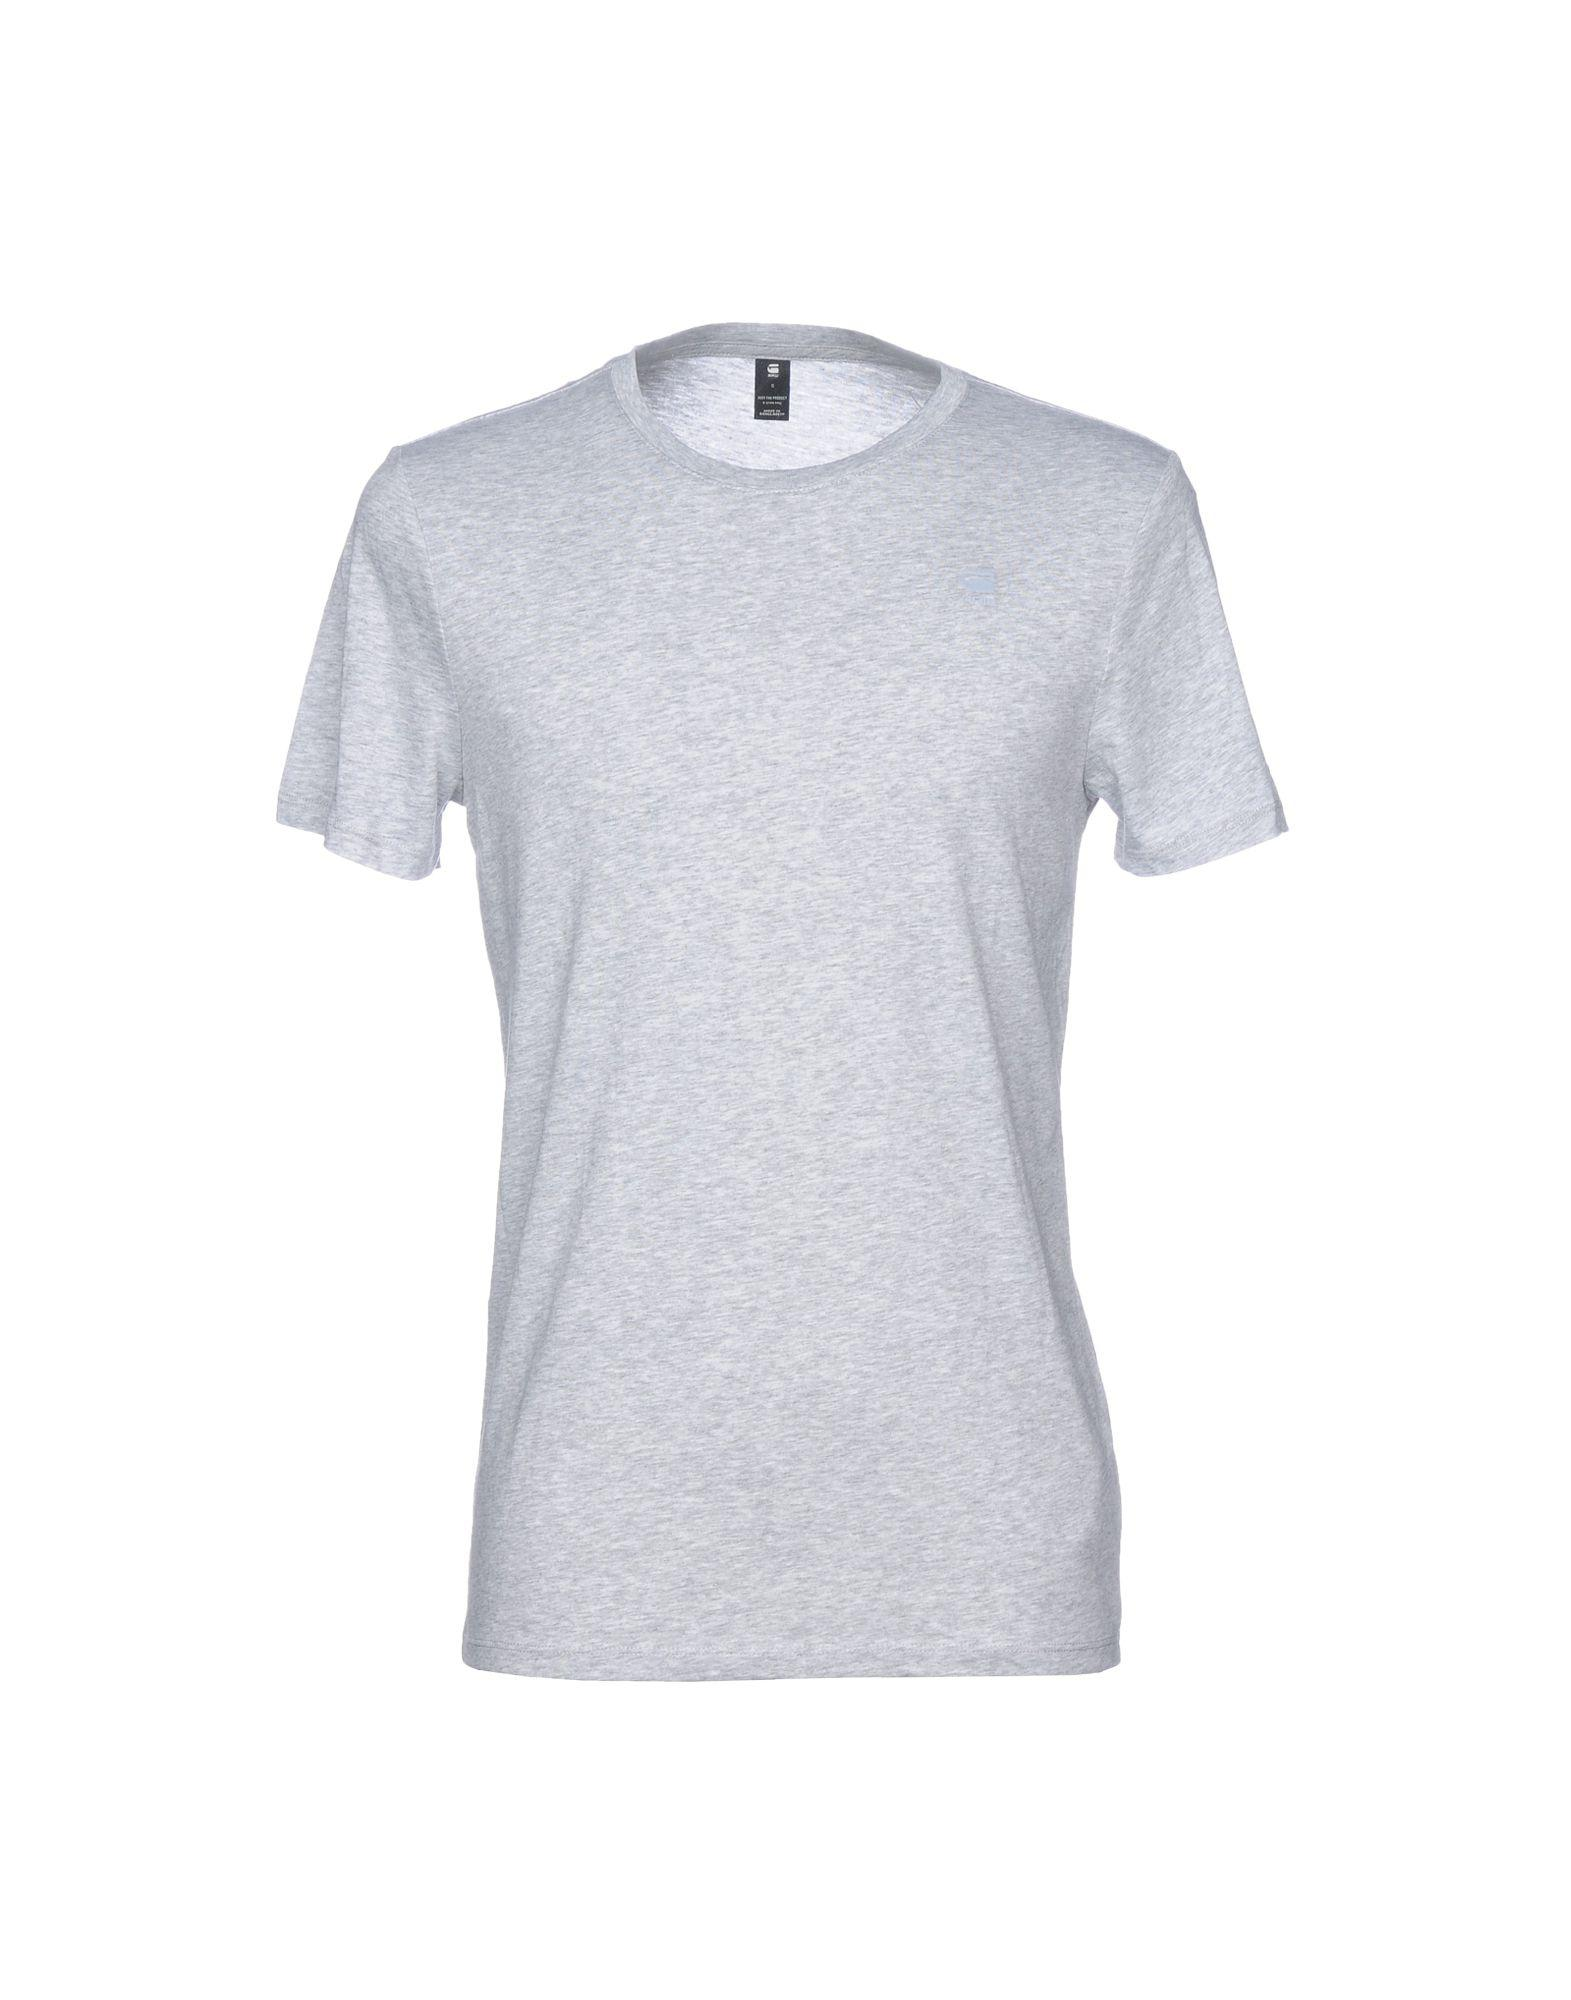 2334a602b01 G-Star RAW T-shirt in Gray for Men - Lyst